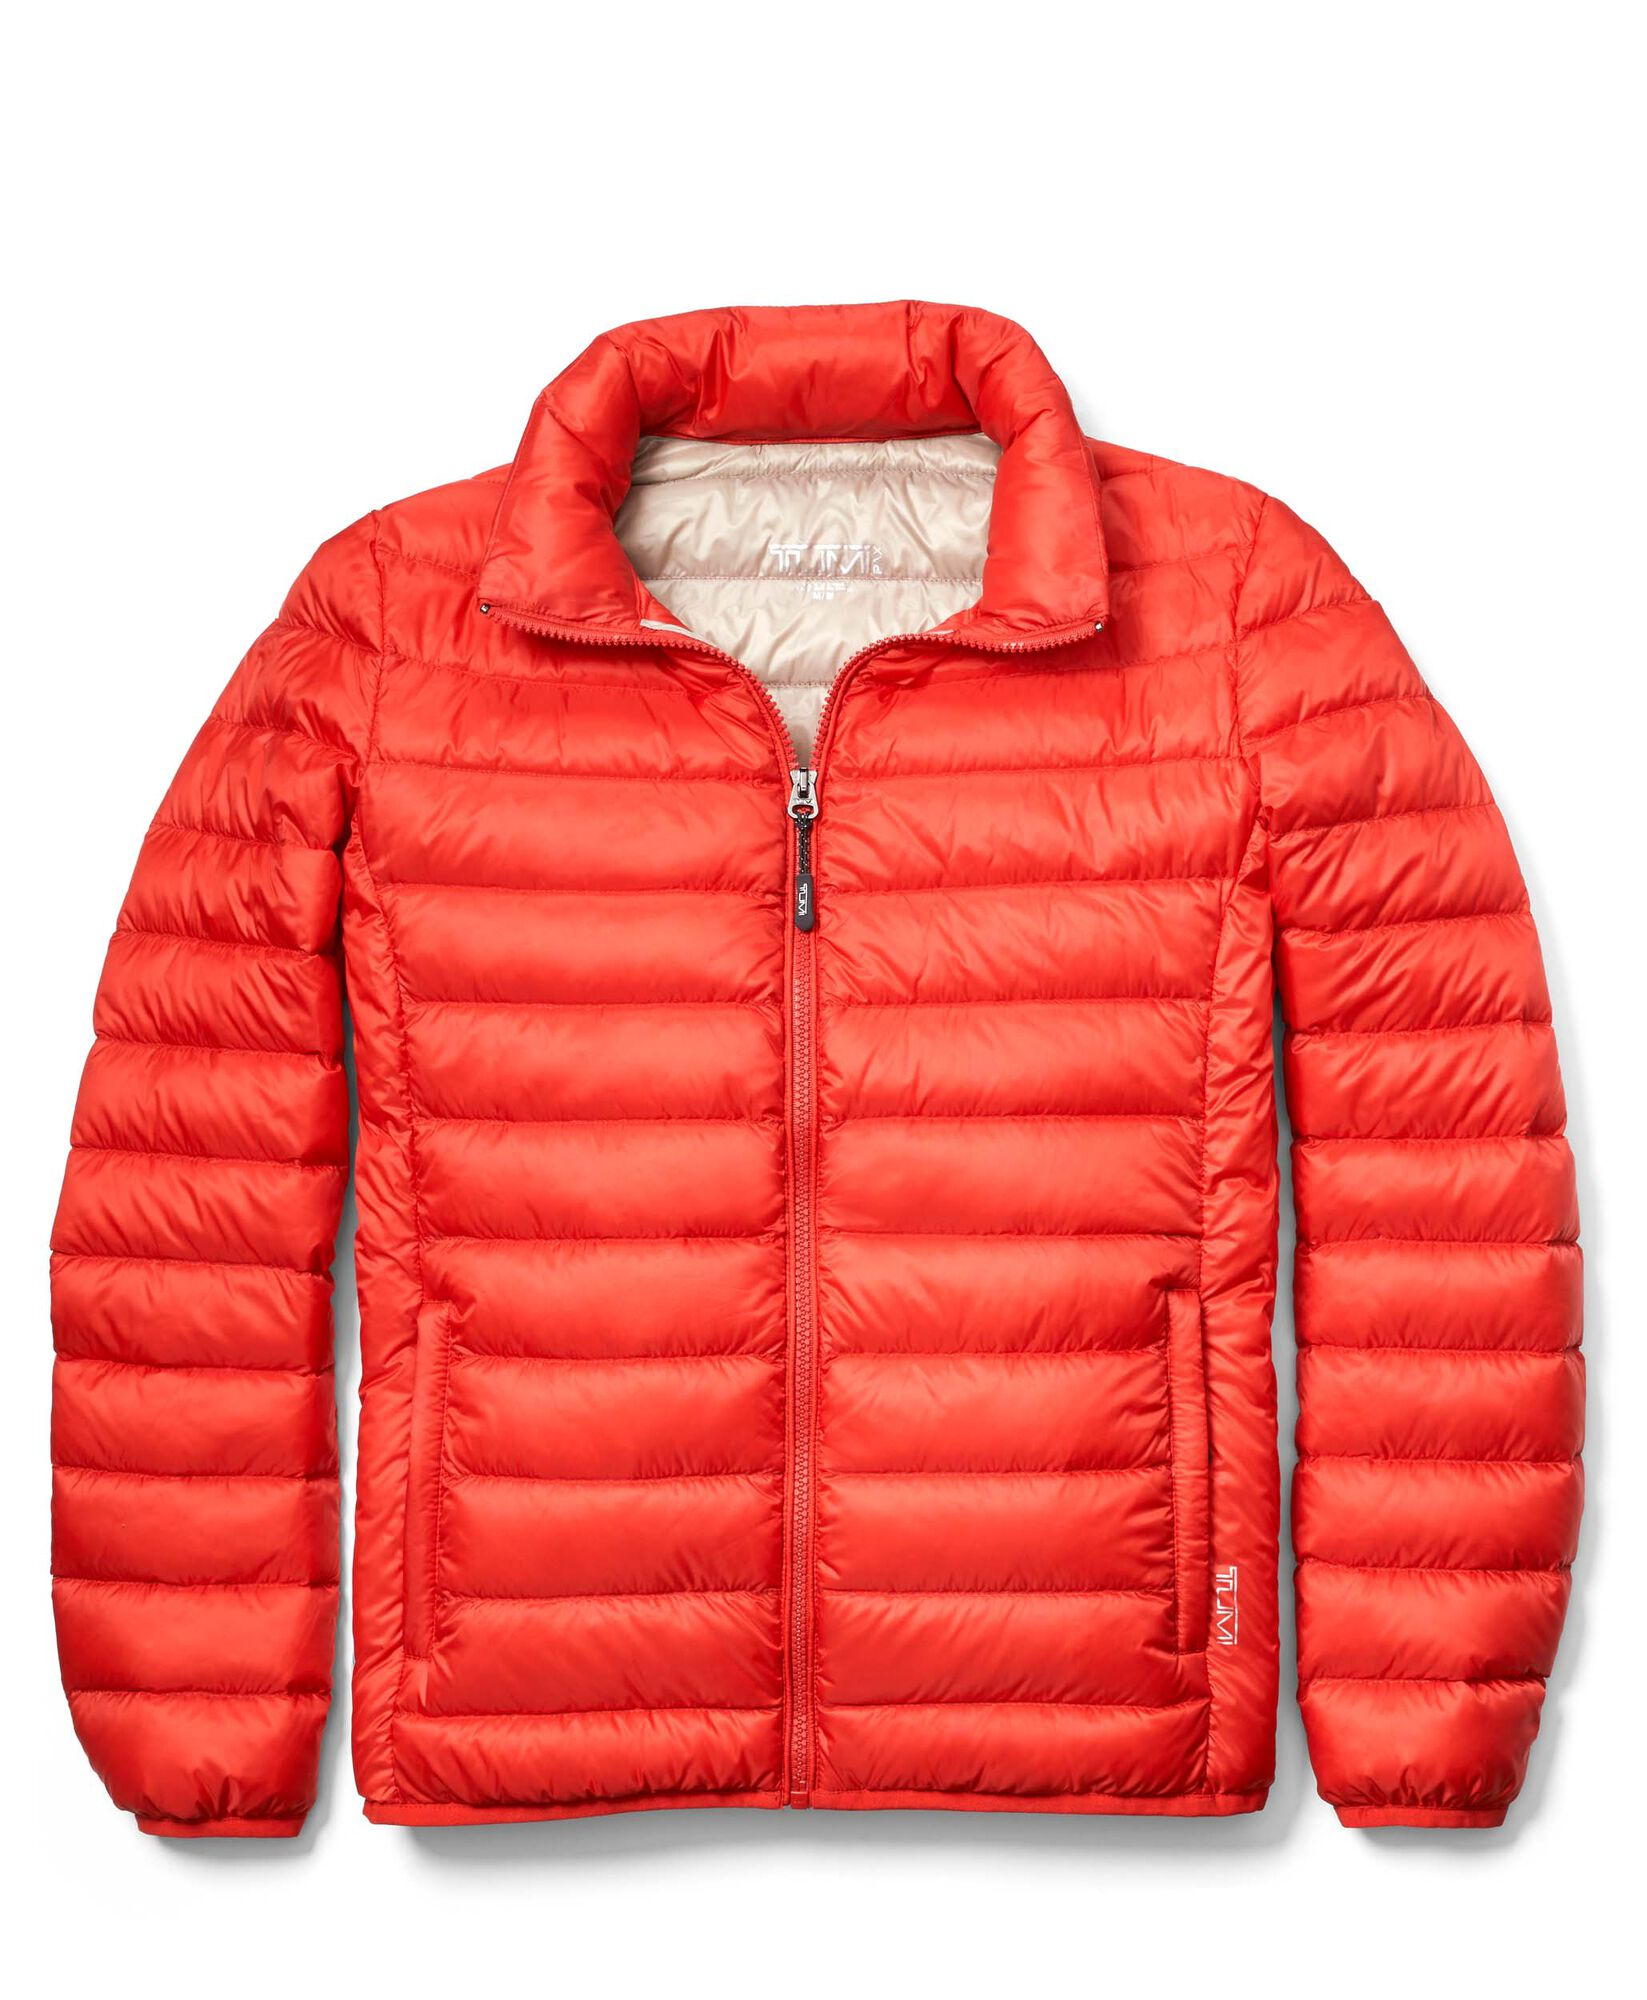 3eef796feac Women's - Clairmont Packable Travel Puffer Jacket L TUMIPAX Outerwear